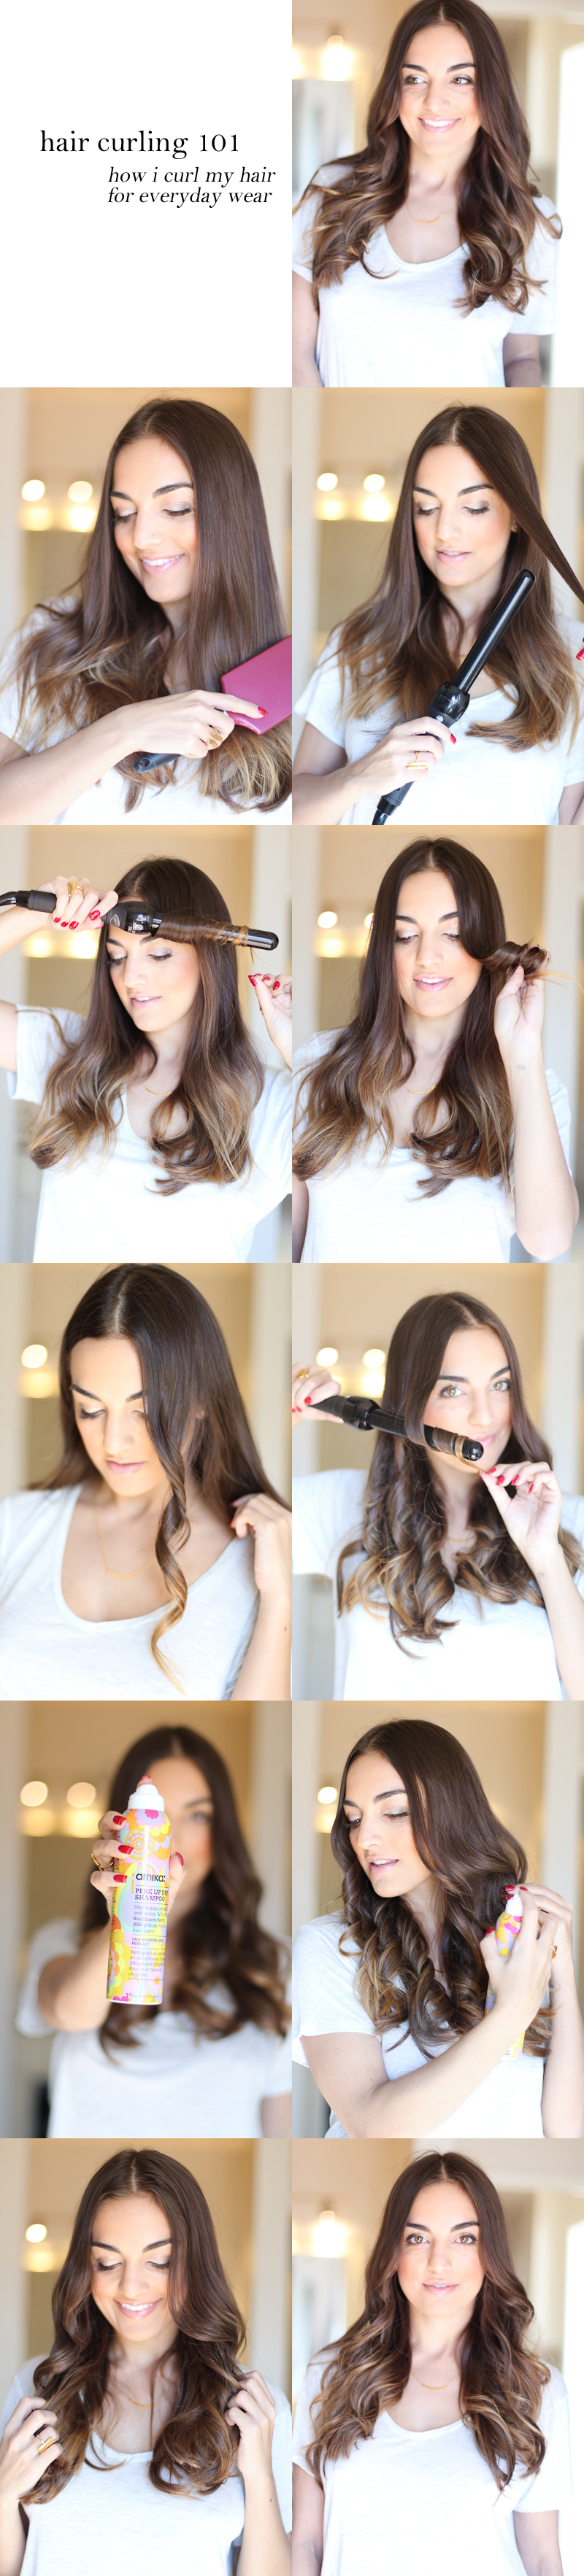 hair-curling-tutorial